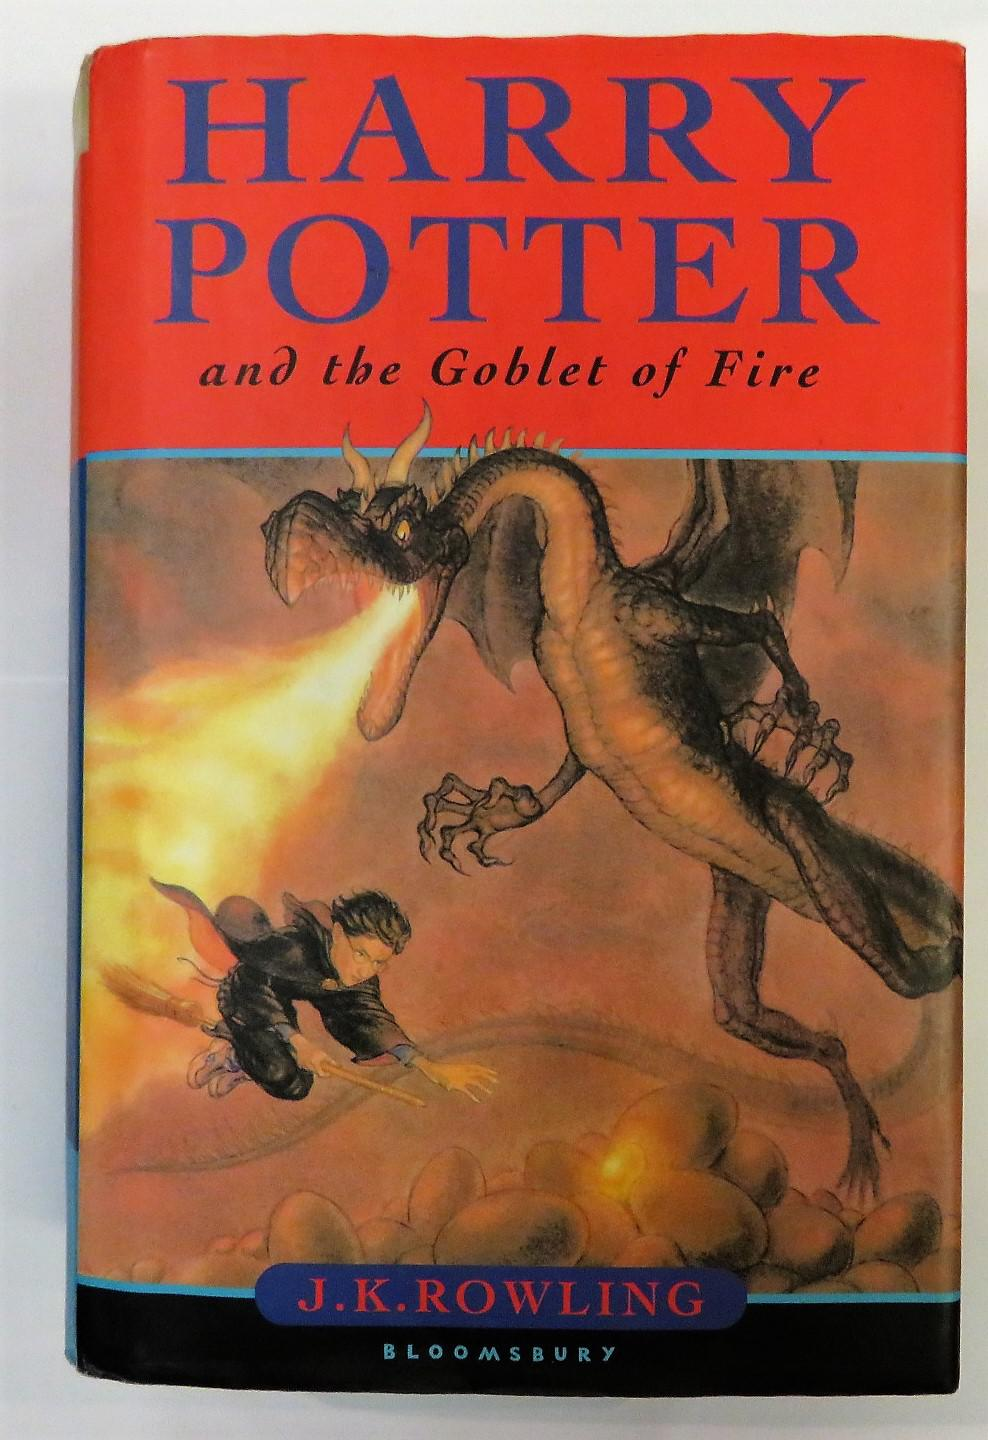 Harry Potter and the Goblet of Fire Signed First Edition